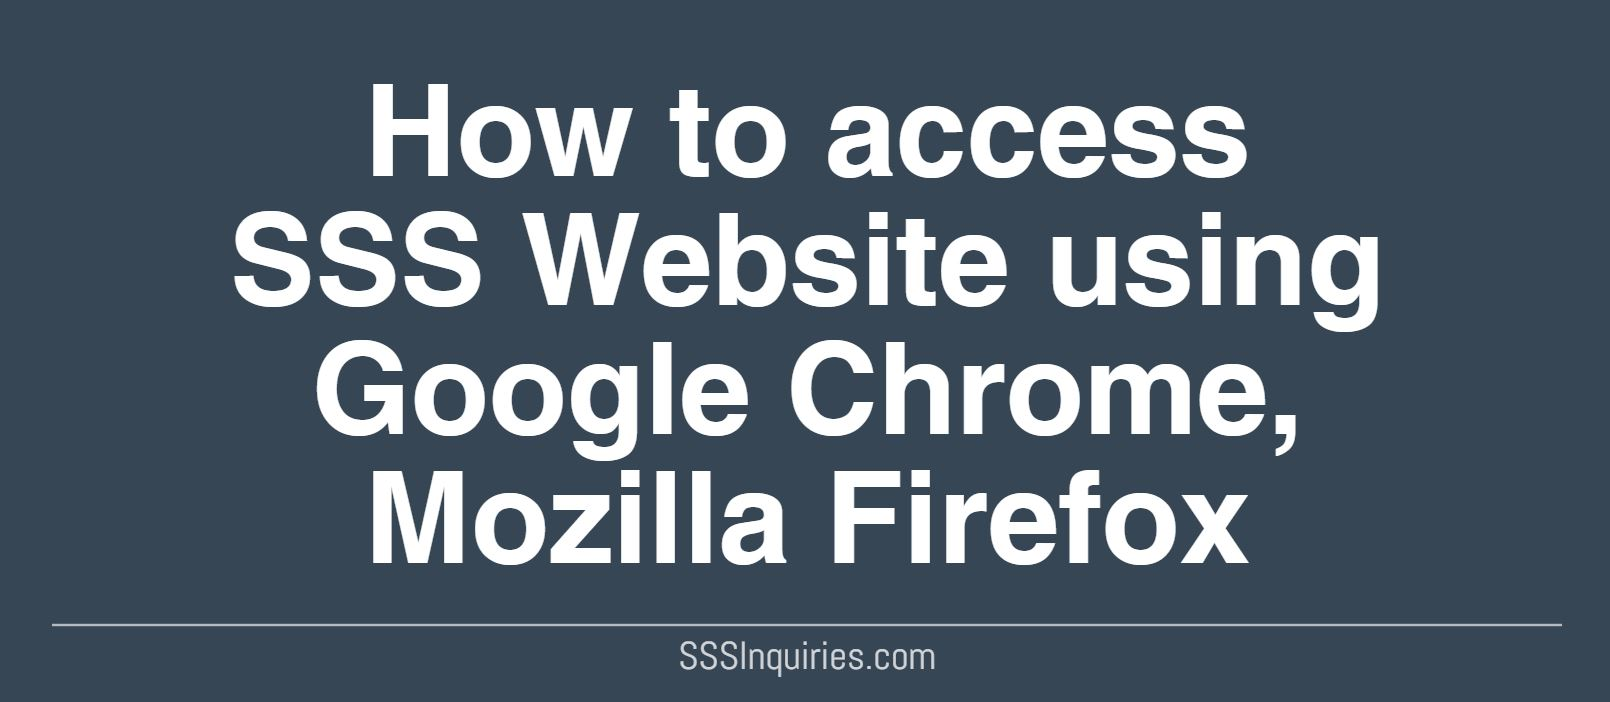 How to Access SSS Website using Google Chrome and Mozilla Firefox